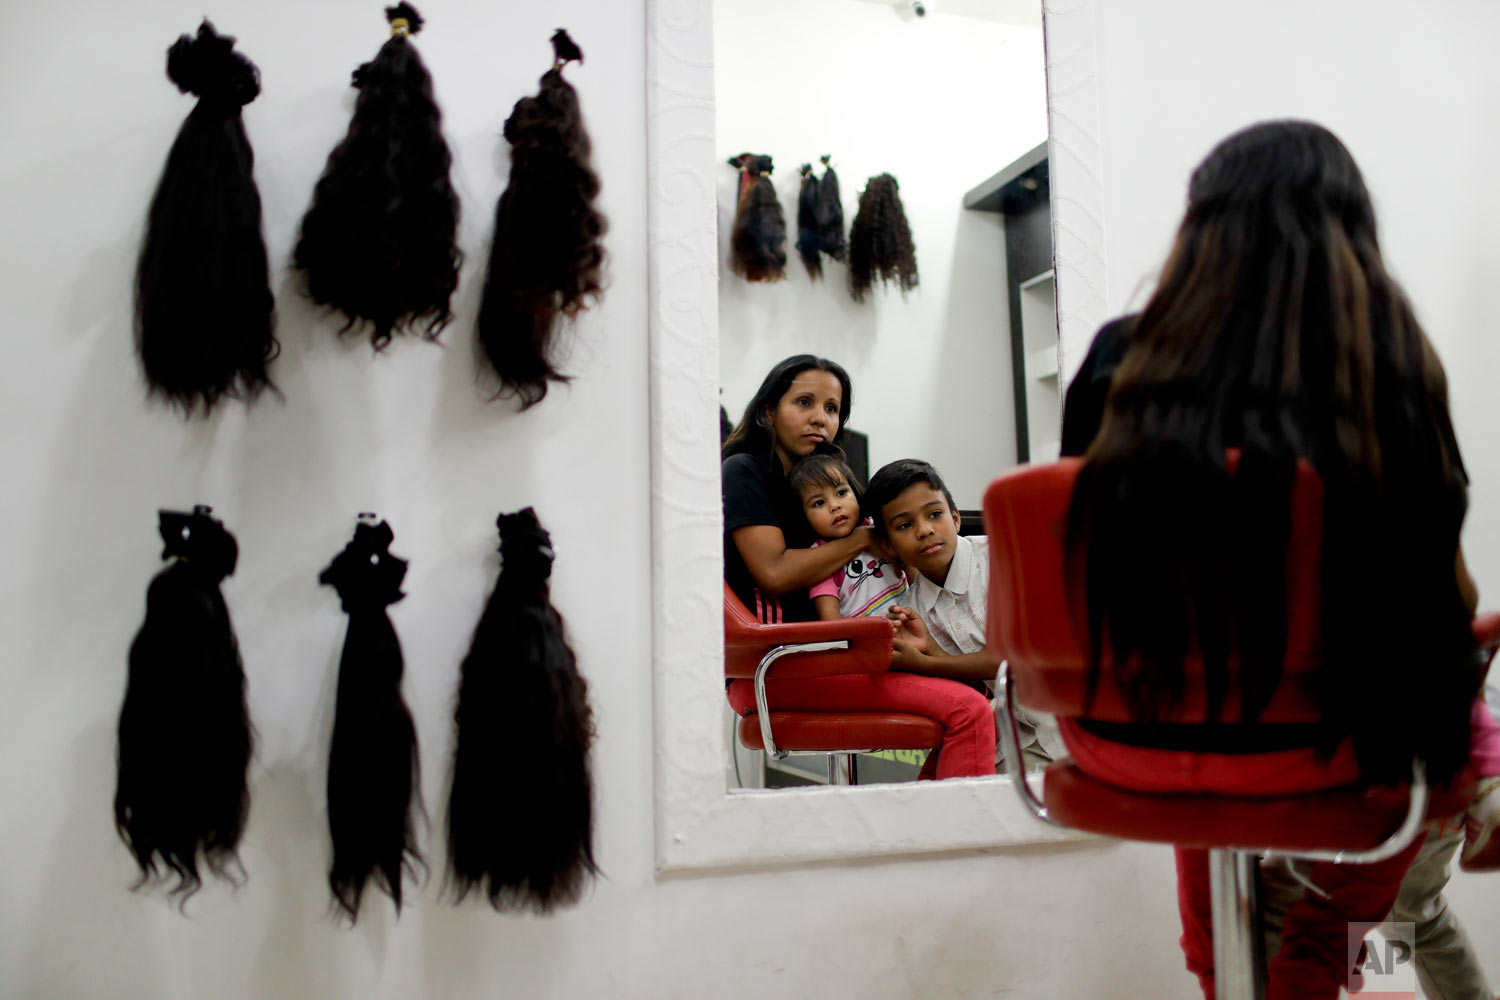 Nelly Navarro sits with her kids Nerianny and Luis in a beauty salon where she came to consult how much money she could get for her hair, in Caracas, Venezuela, Tuesday, April 2, 2019. Navarro said she needs the $100 to travel to Colombia where she's planning to move. (AP Photo/Natacha Pisarenko)